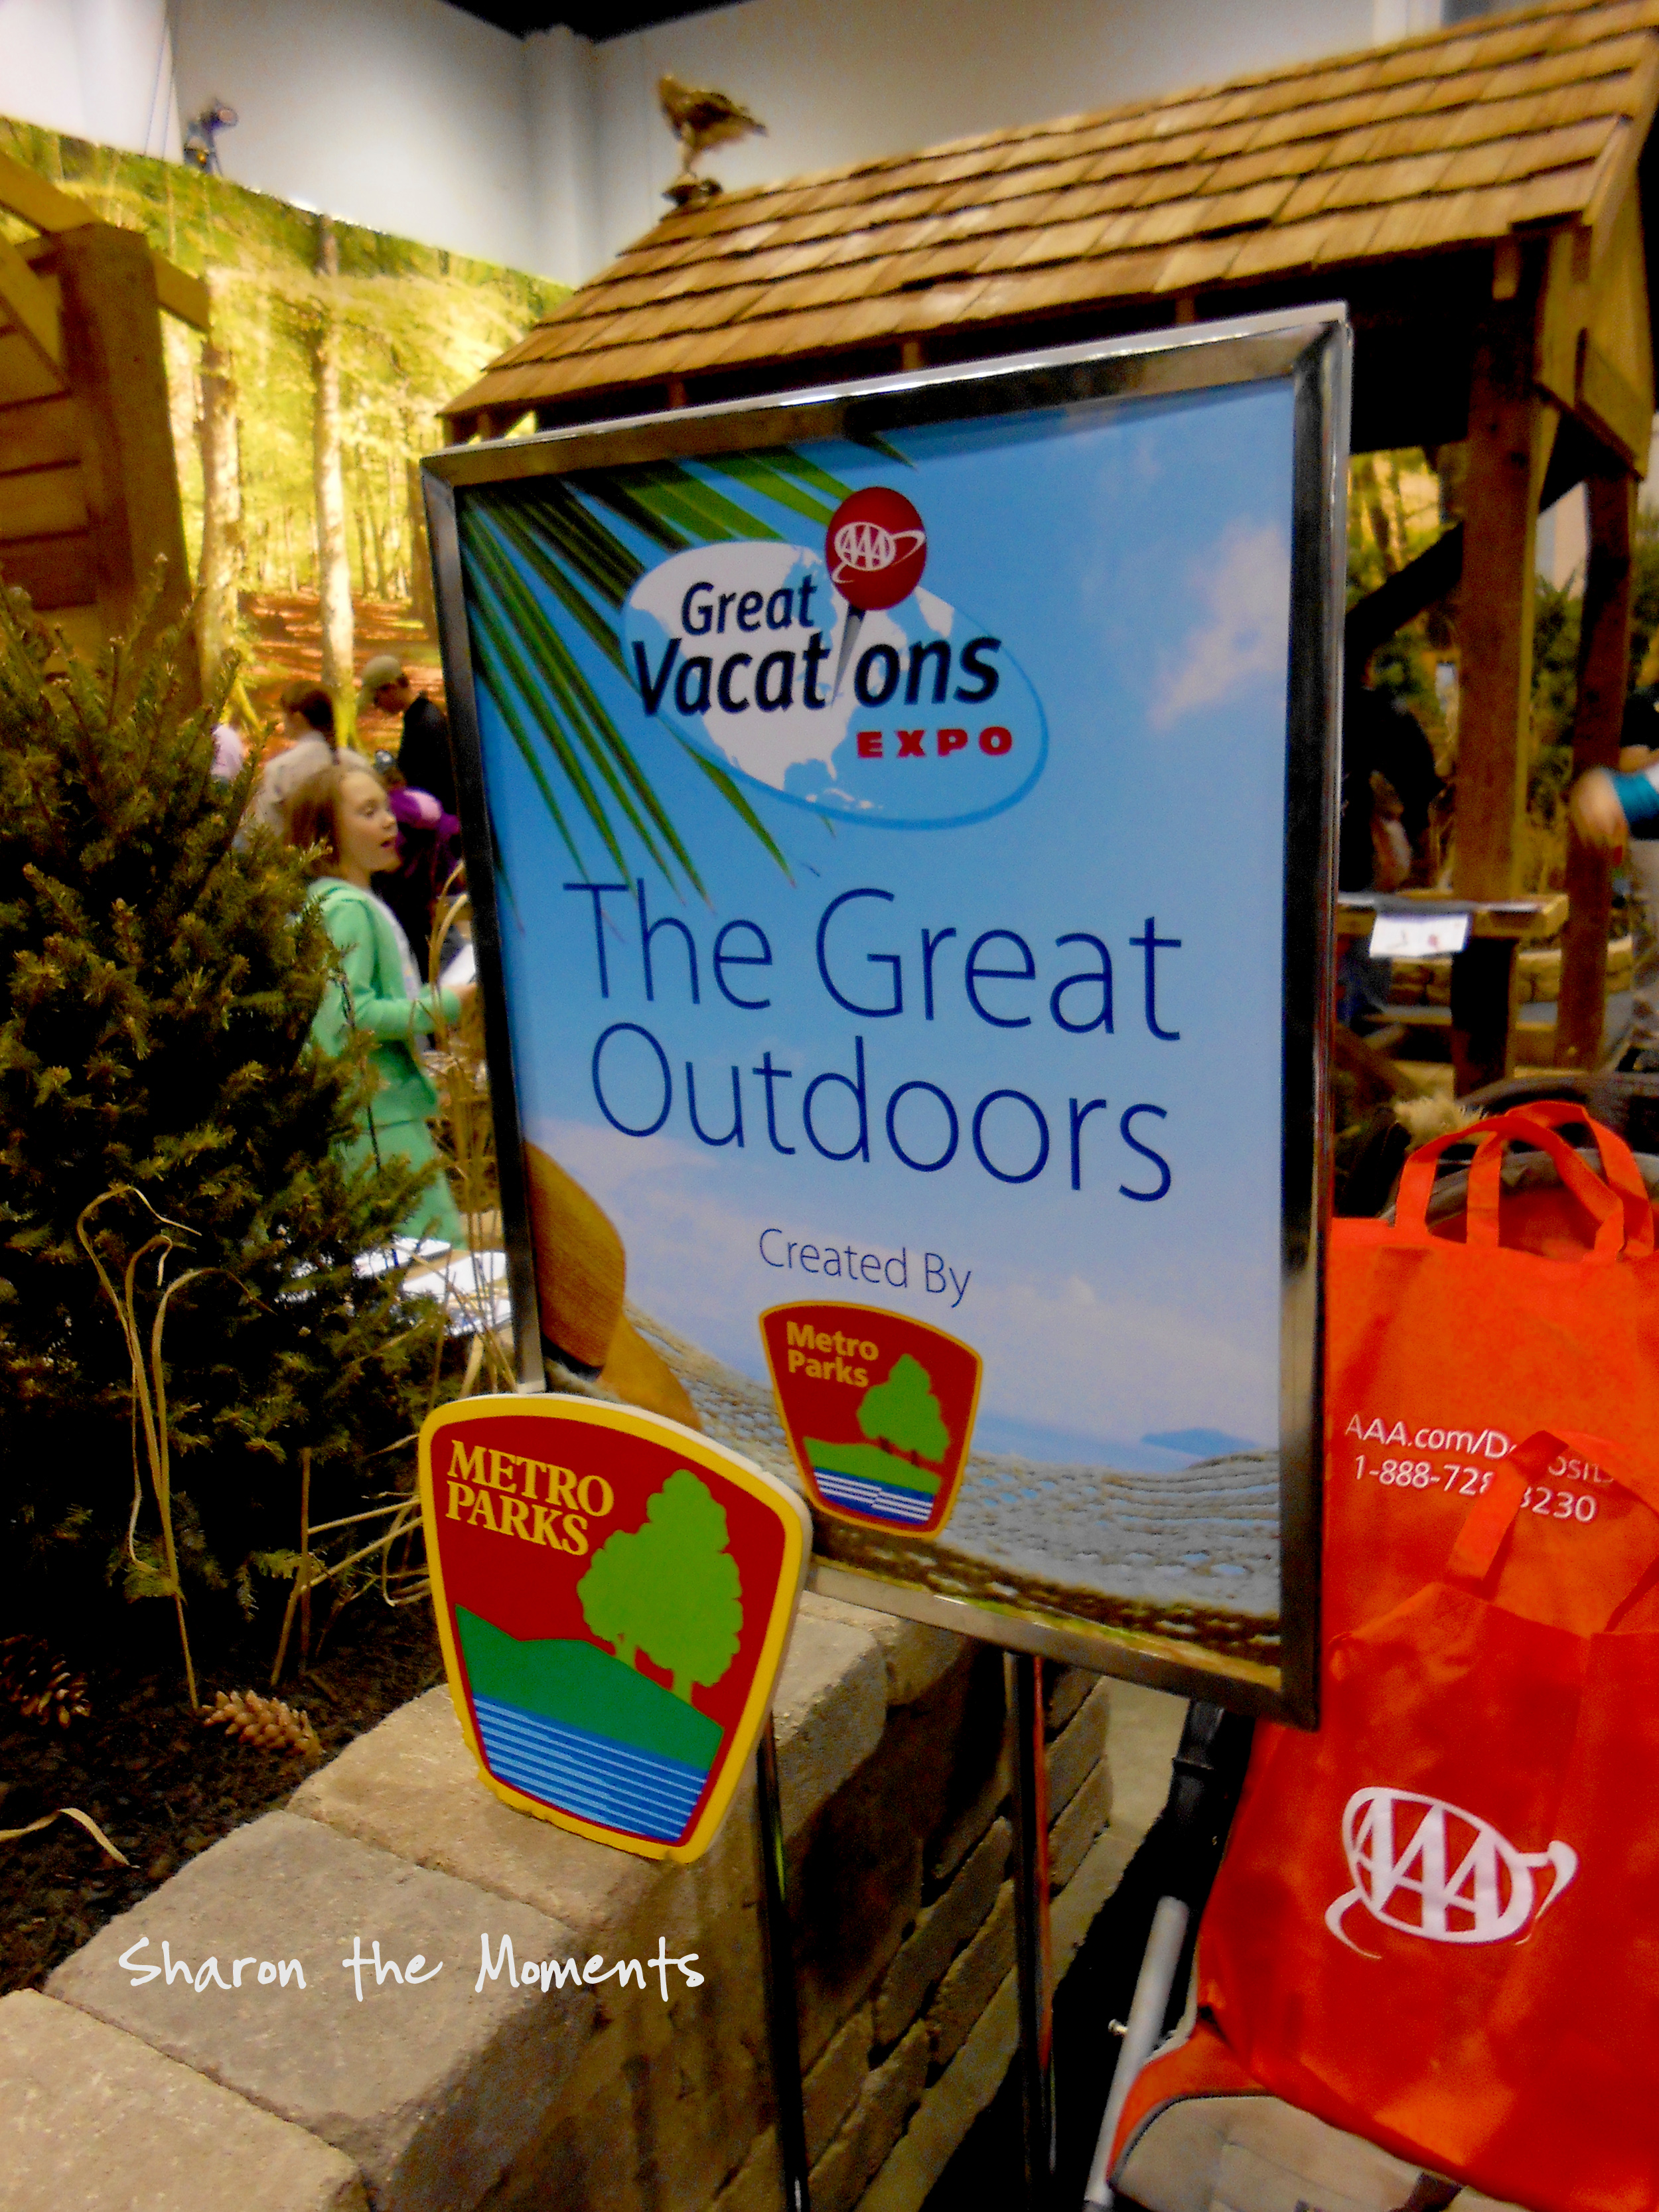 The AAA Vacation & Travel Expo Metro Parks|Sharon the Moments blog